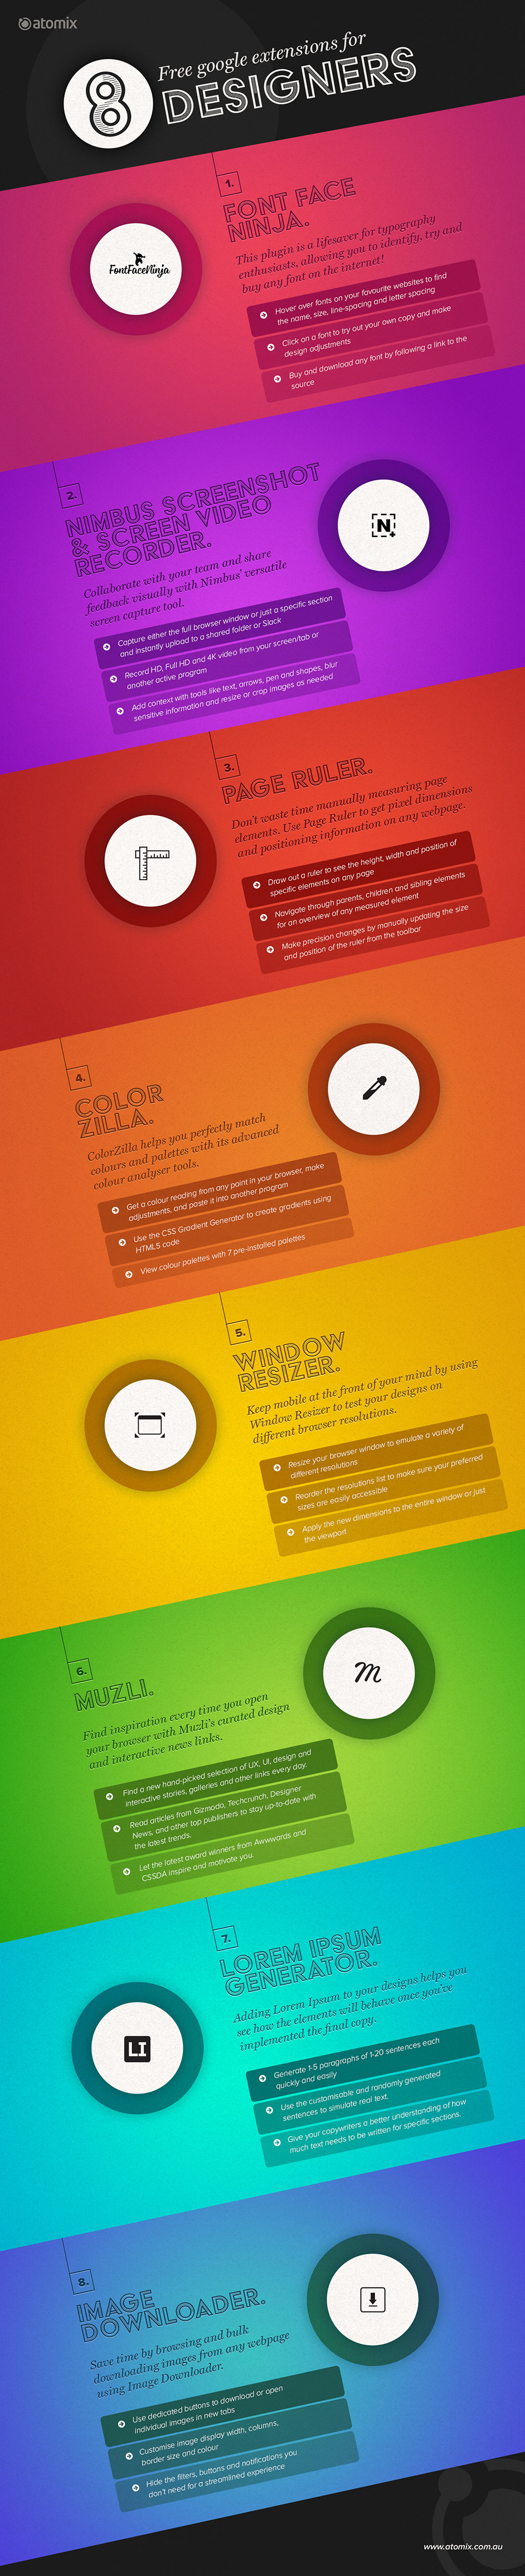 free google extensions for designers infographic